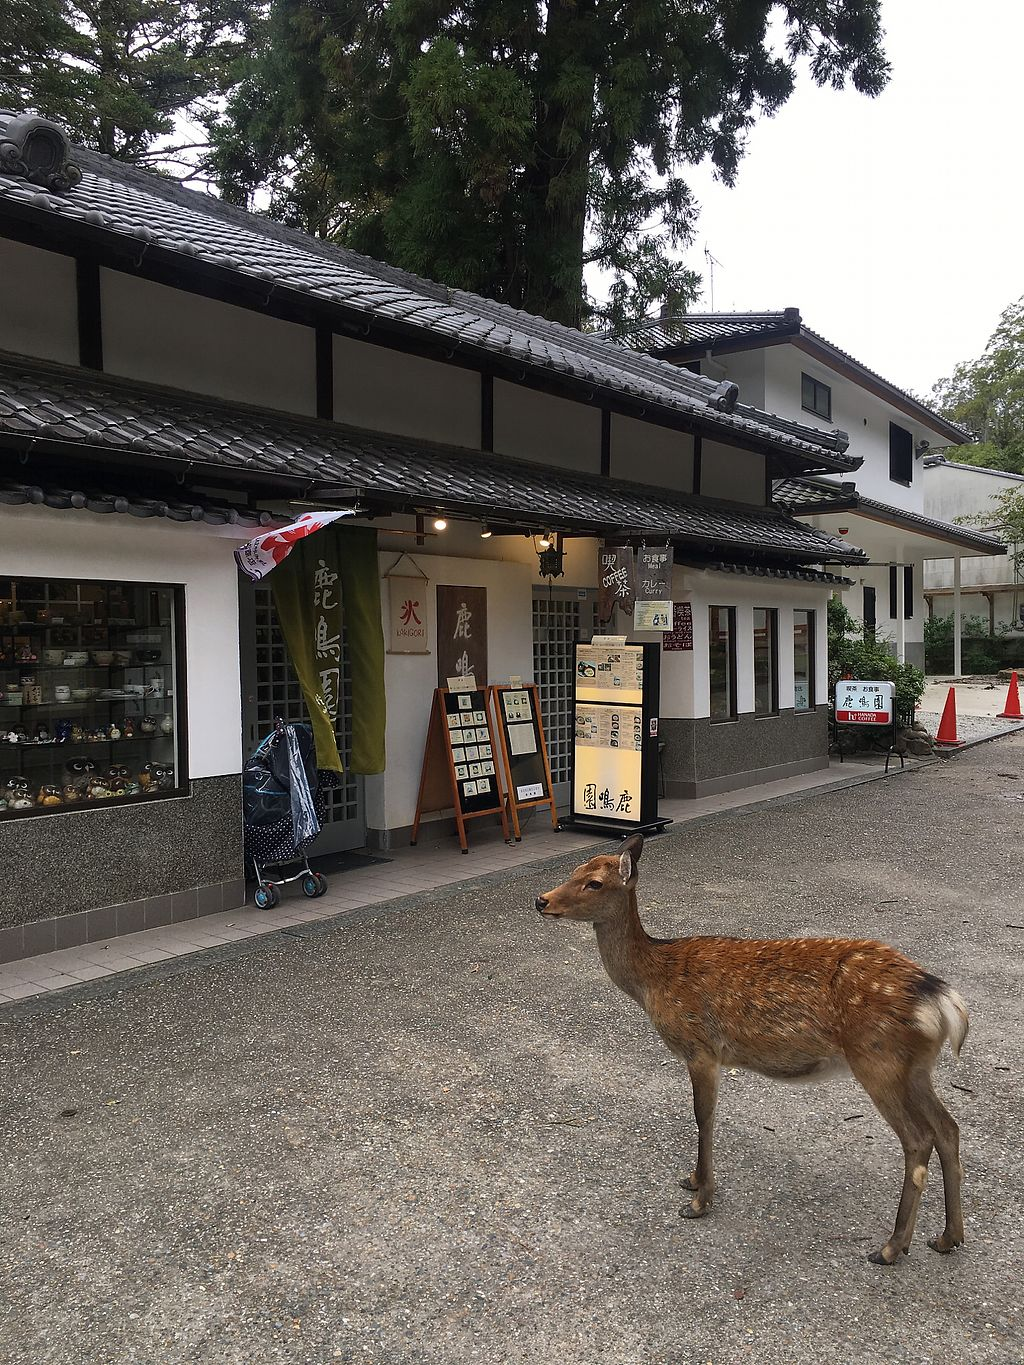 """Photo of Rokumeien  by <a href=""""/members/profile/ryannm"""">ryannm</a> <br/>The deer love it too! <br/> September 18, 2017  - <a href='/contact/abuse/image/65065/305562'>Report</a>"""